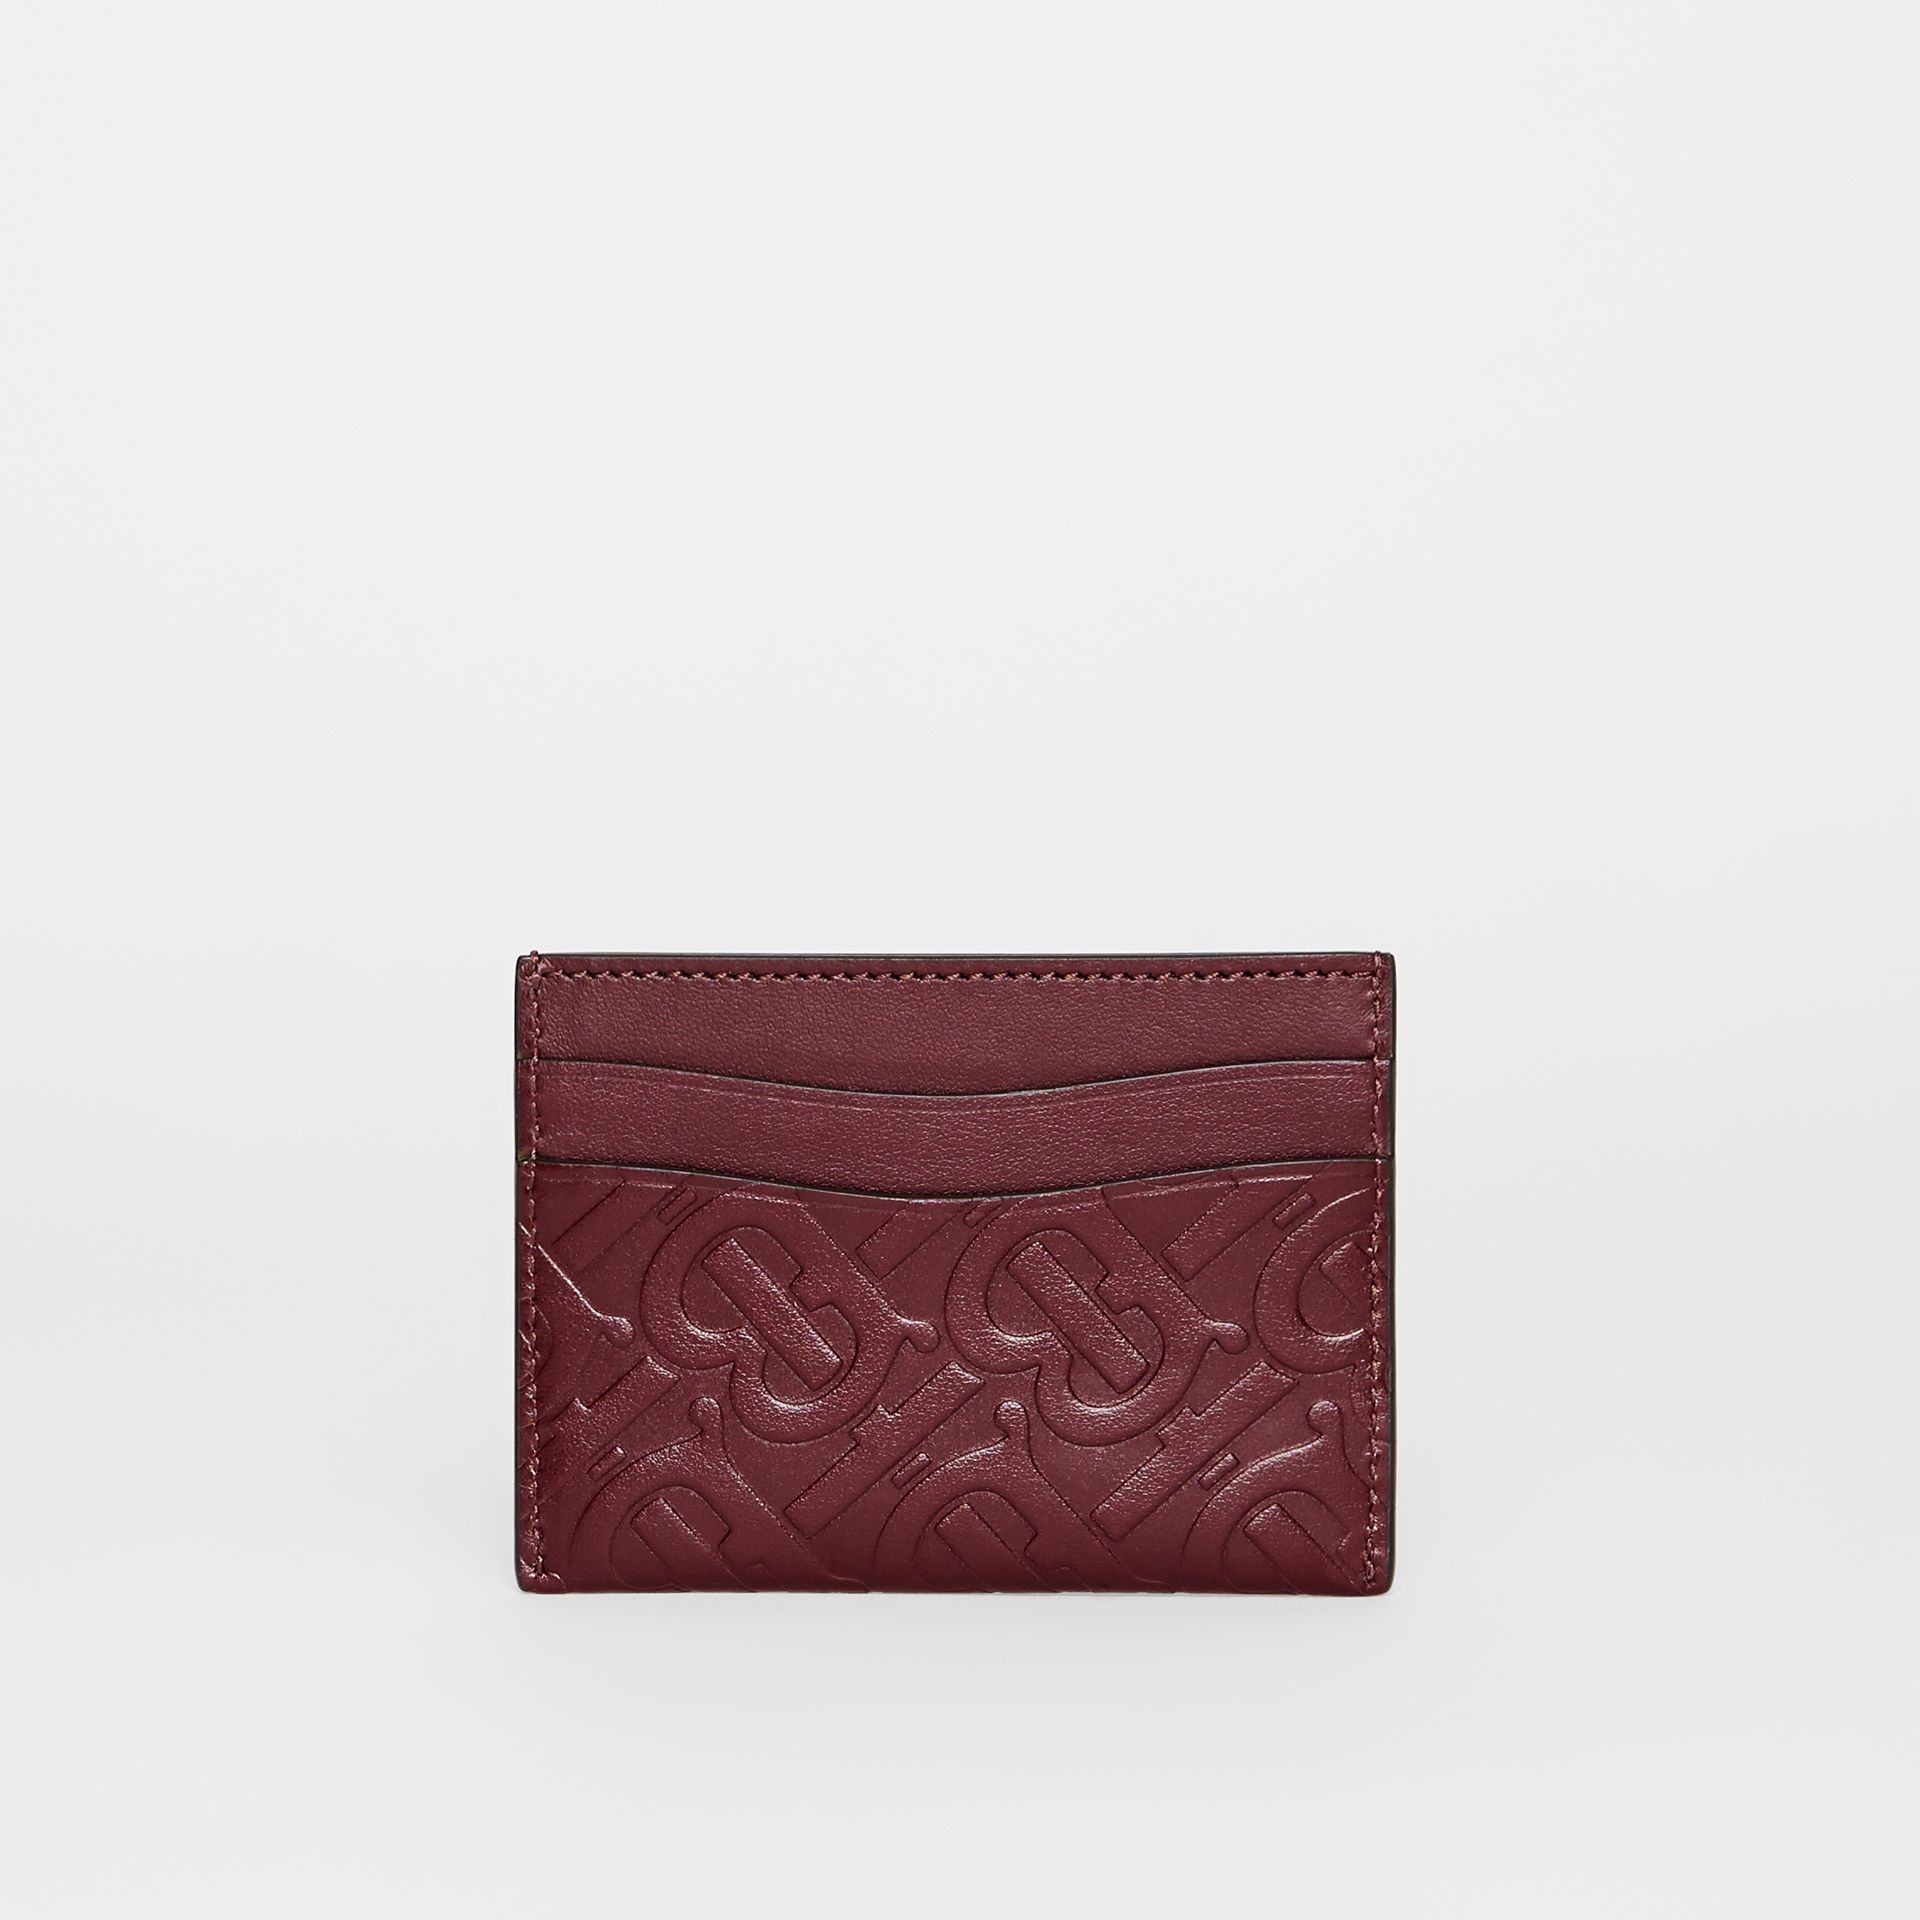 Monogram Leather Card Case in Oxblood - Women | Burberry - gallery image 4